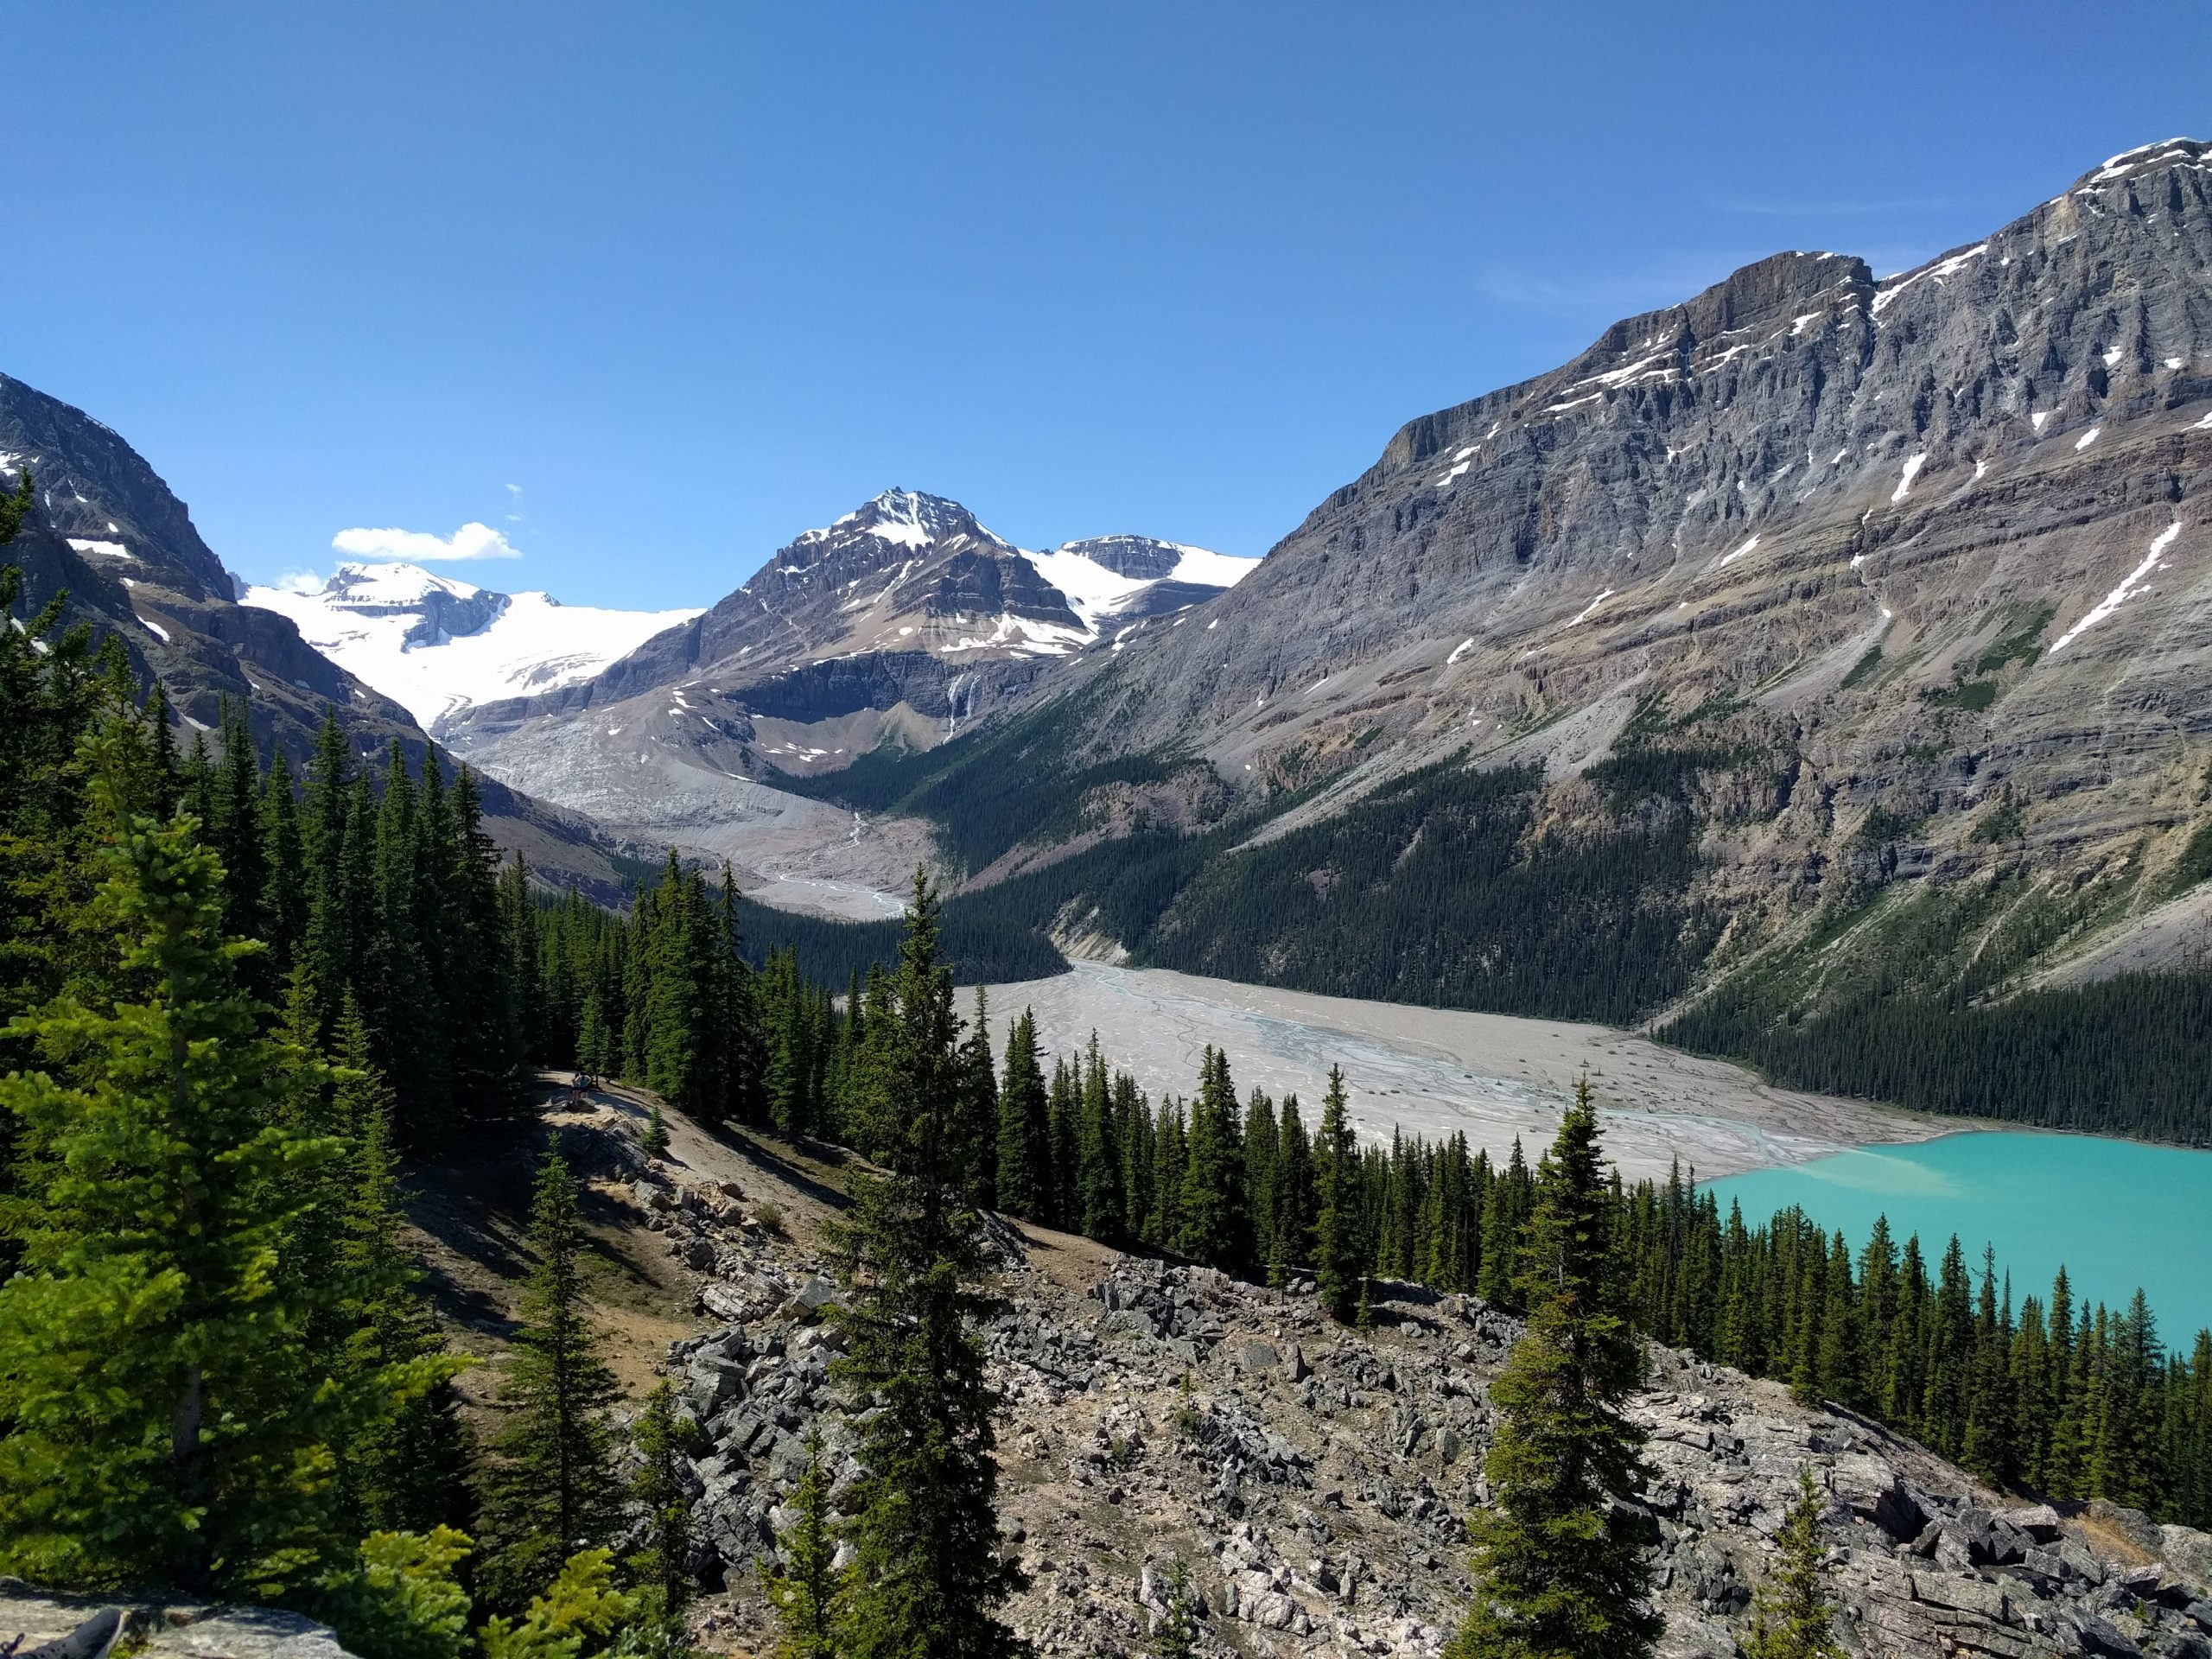 Peyto Lake Canada: The Lake is fed by the Peyto creek which drains water from the Peyto Glacier (on the left)